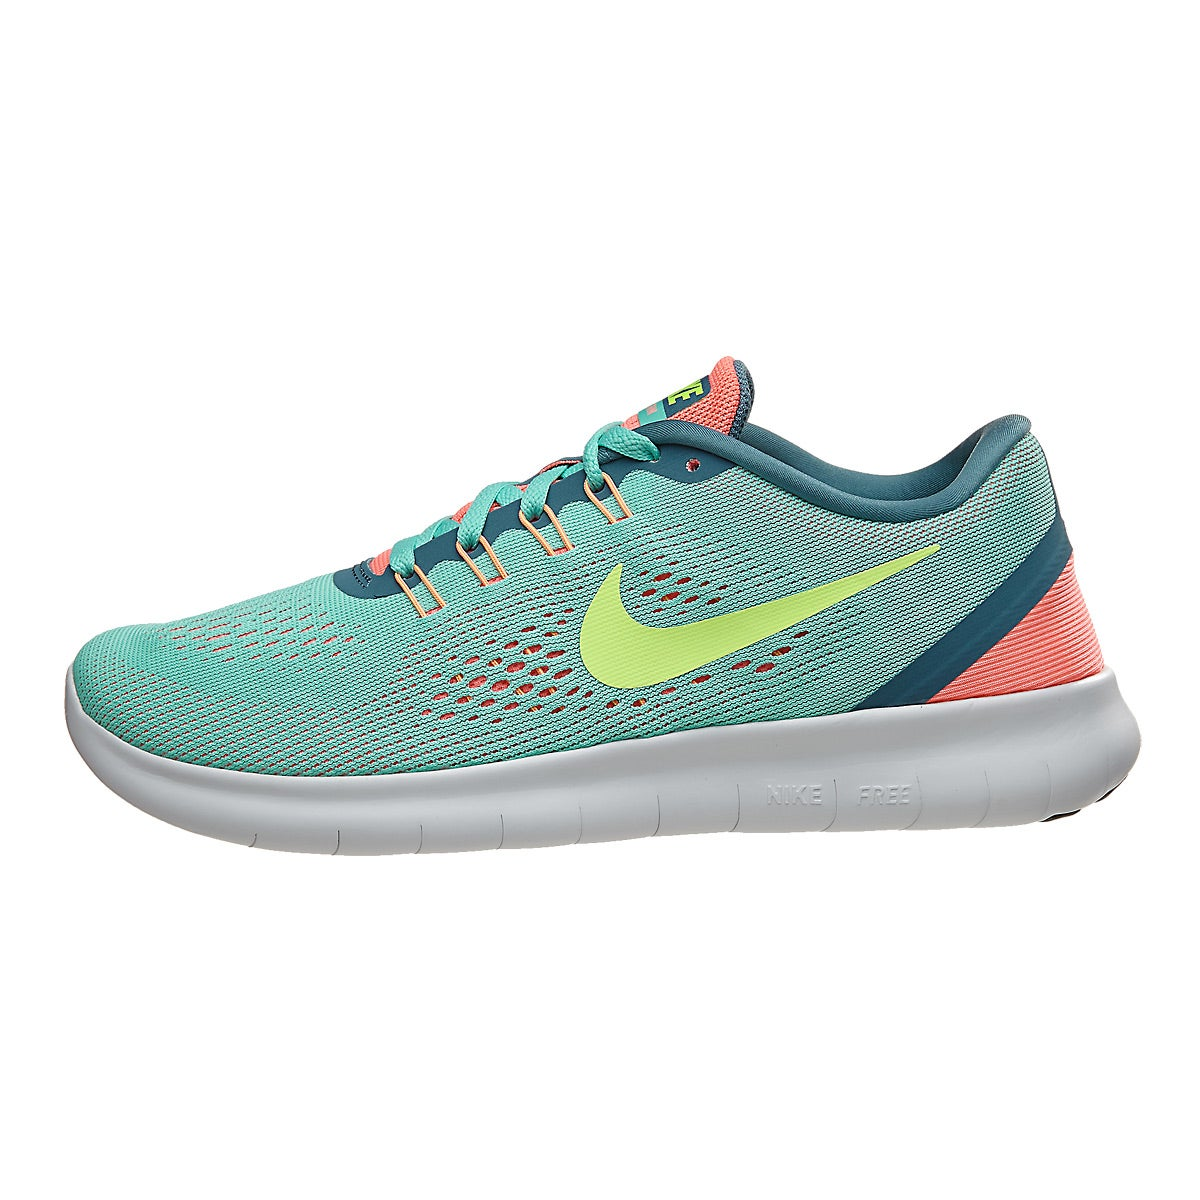 Nike Shoes From The  S